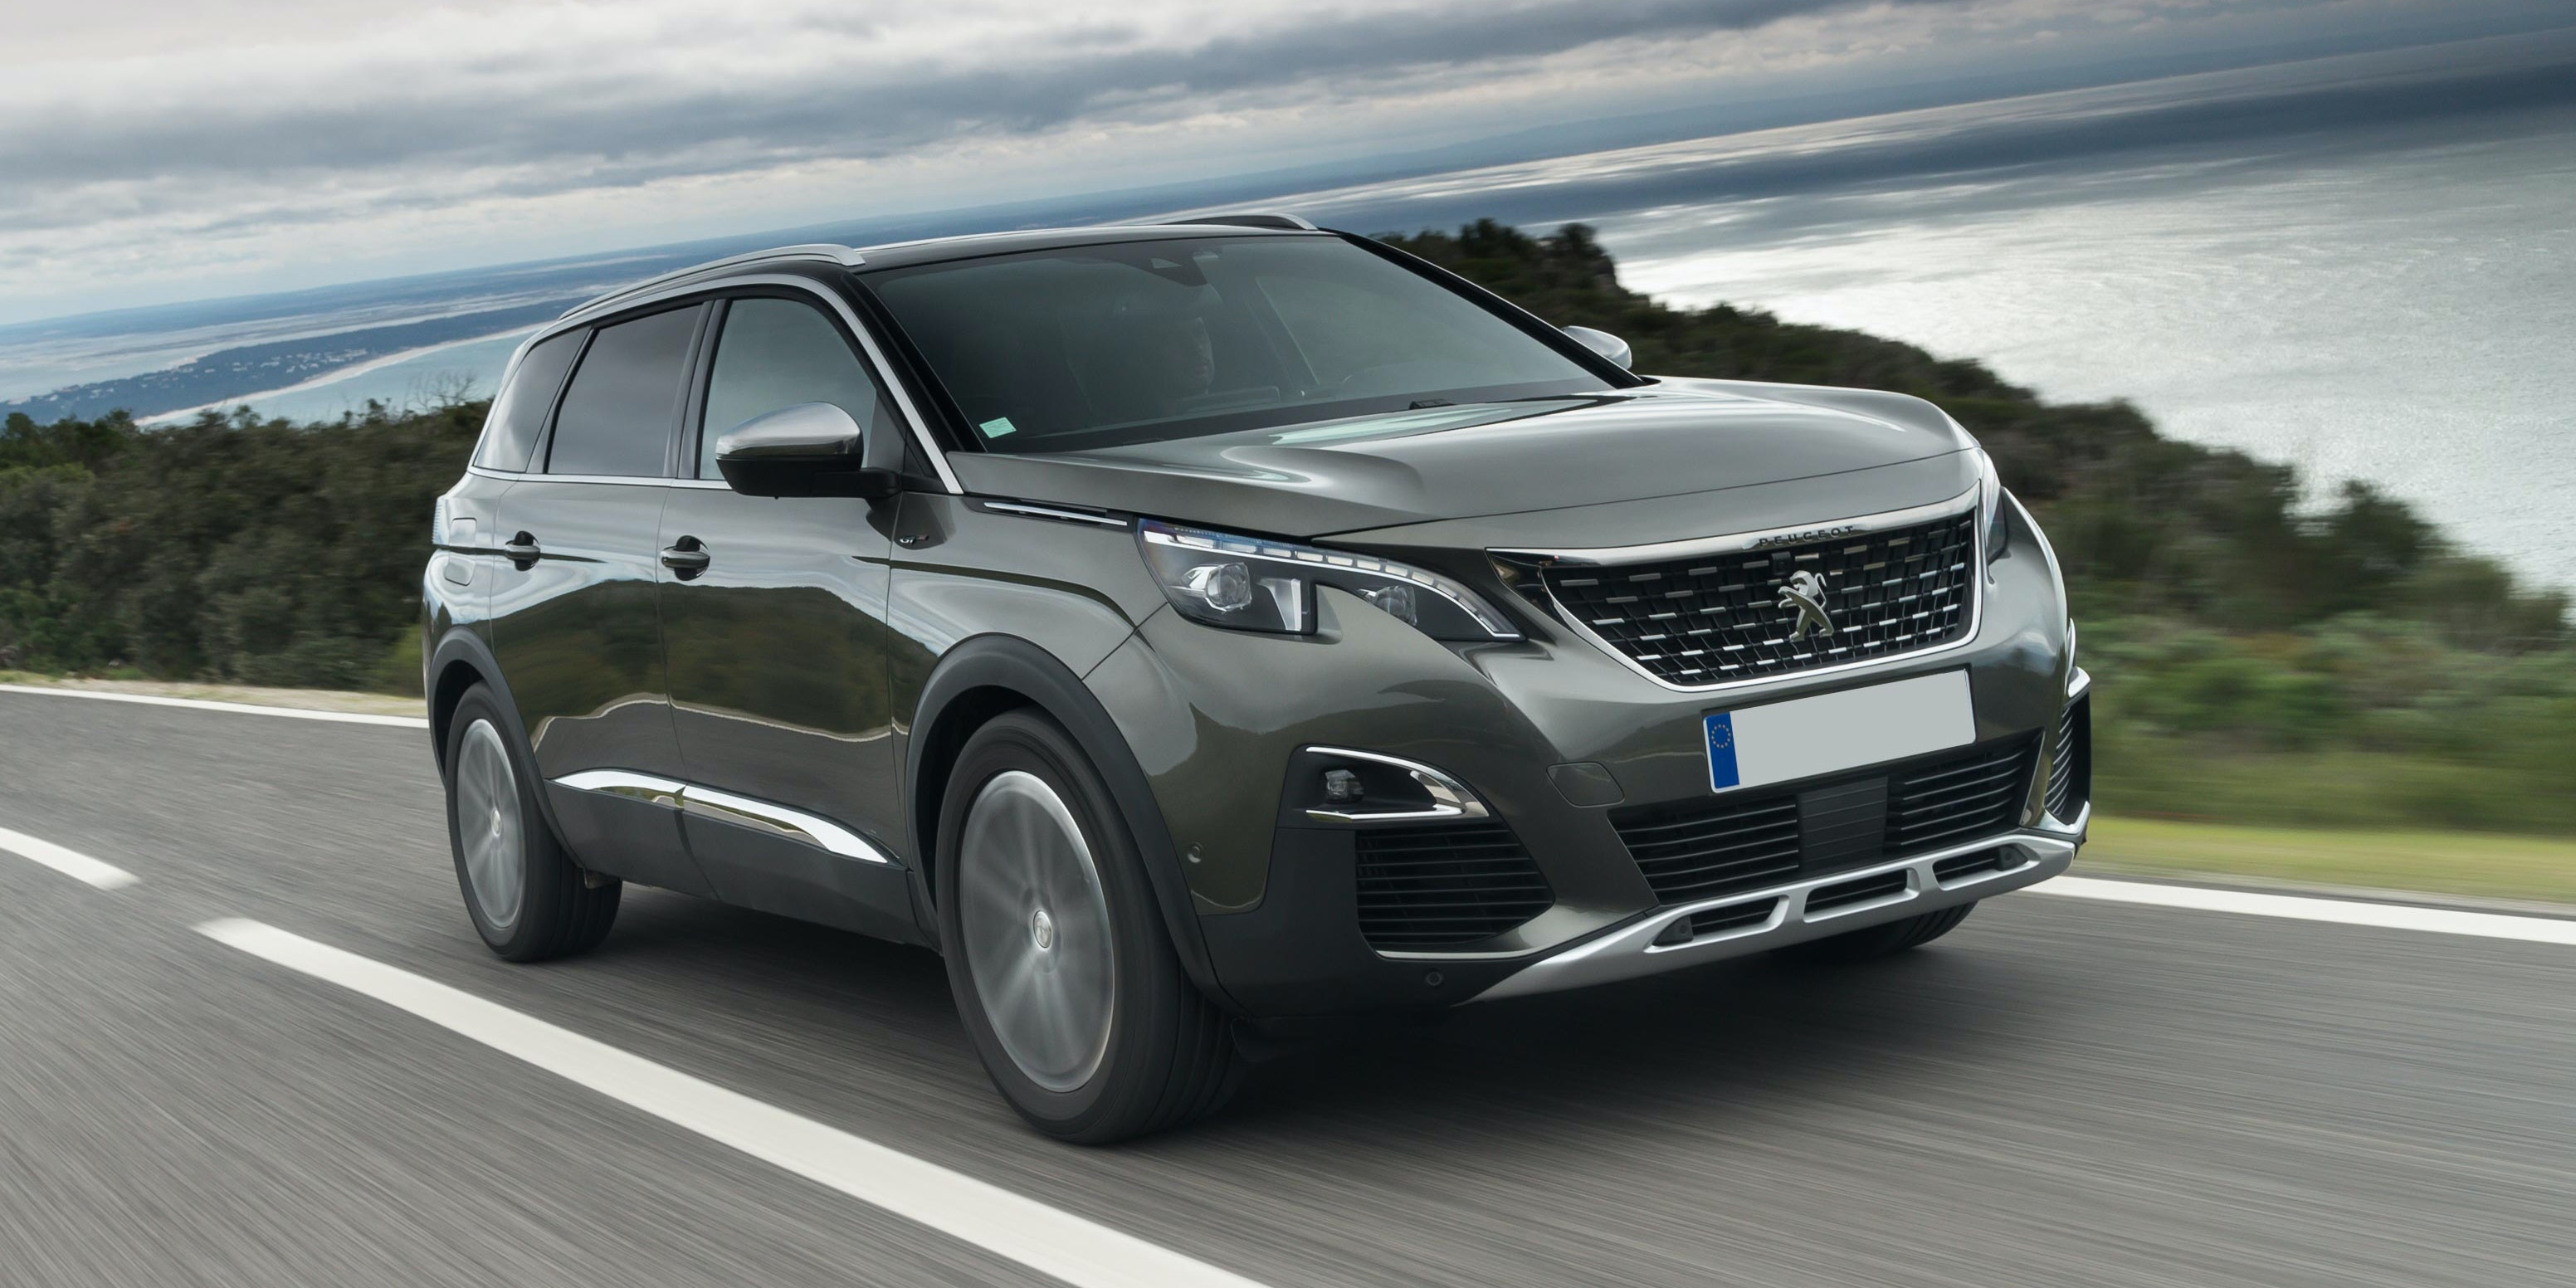 Peugeot 5008 2017 Review | carwow